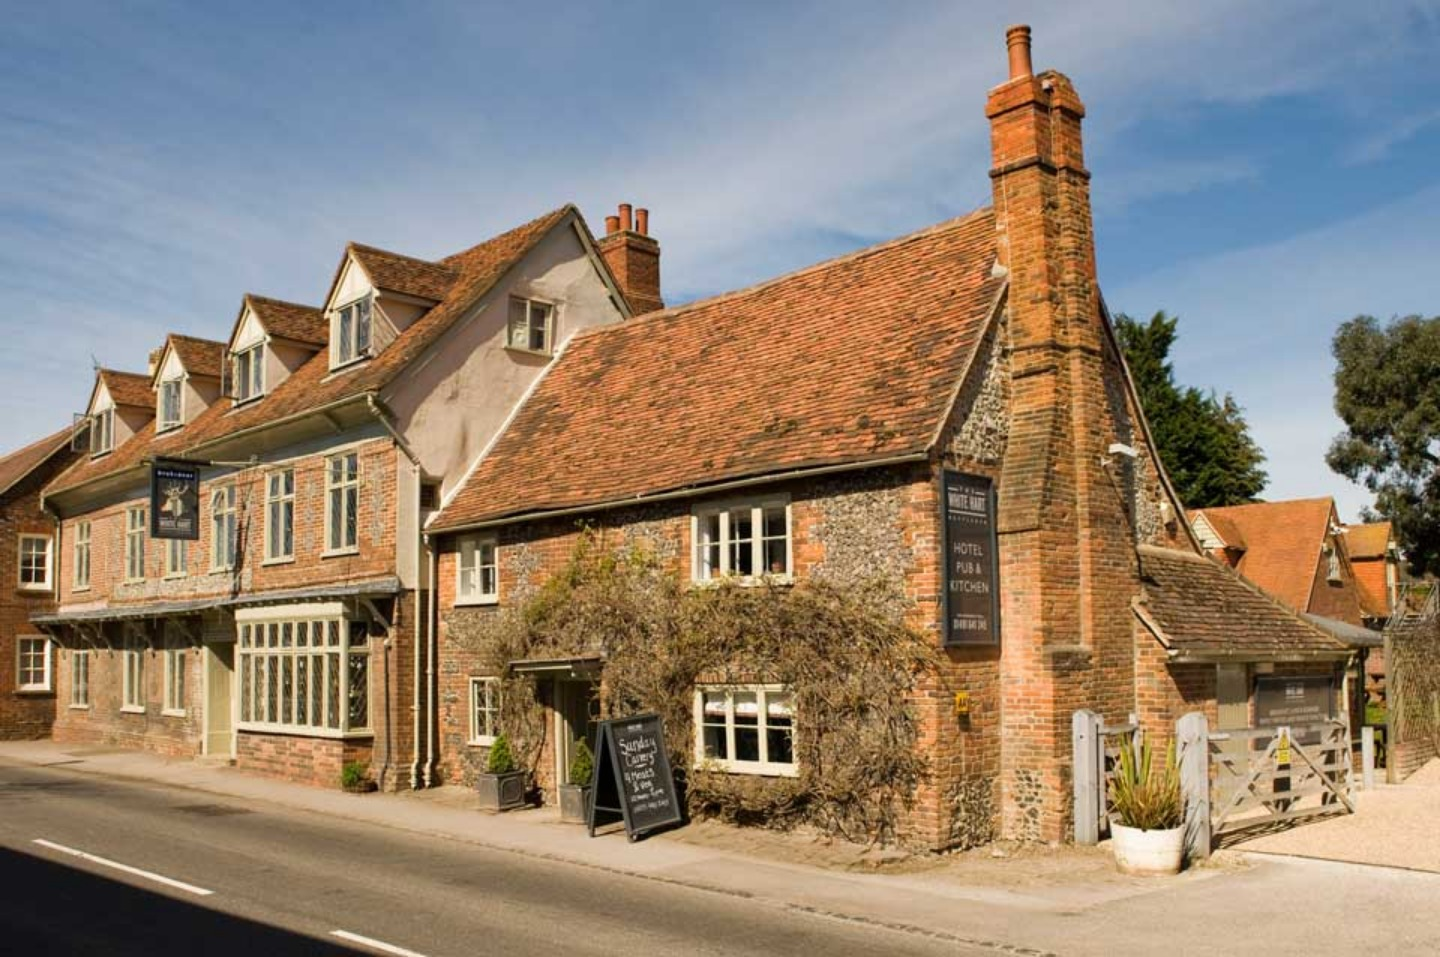 An old brick building at The White Hart.